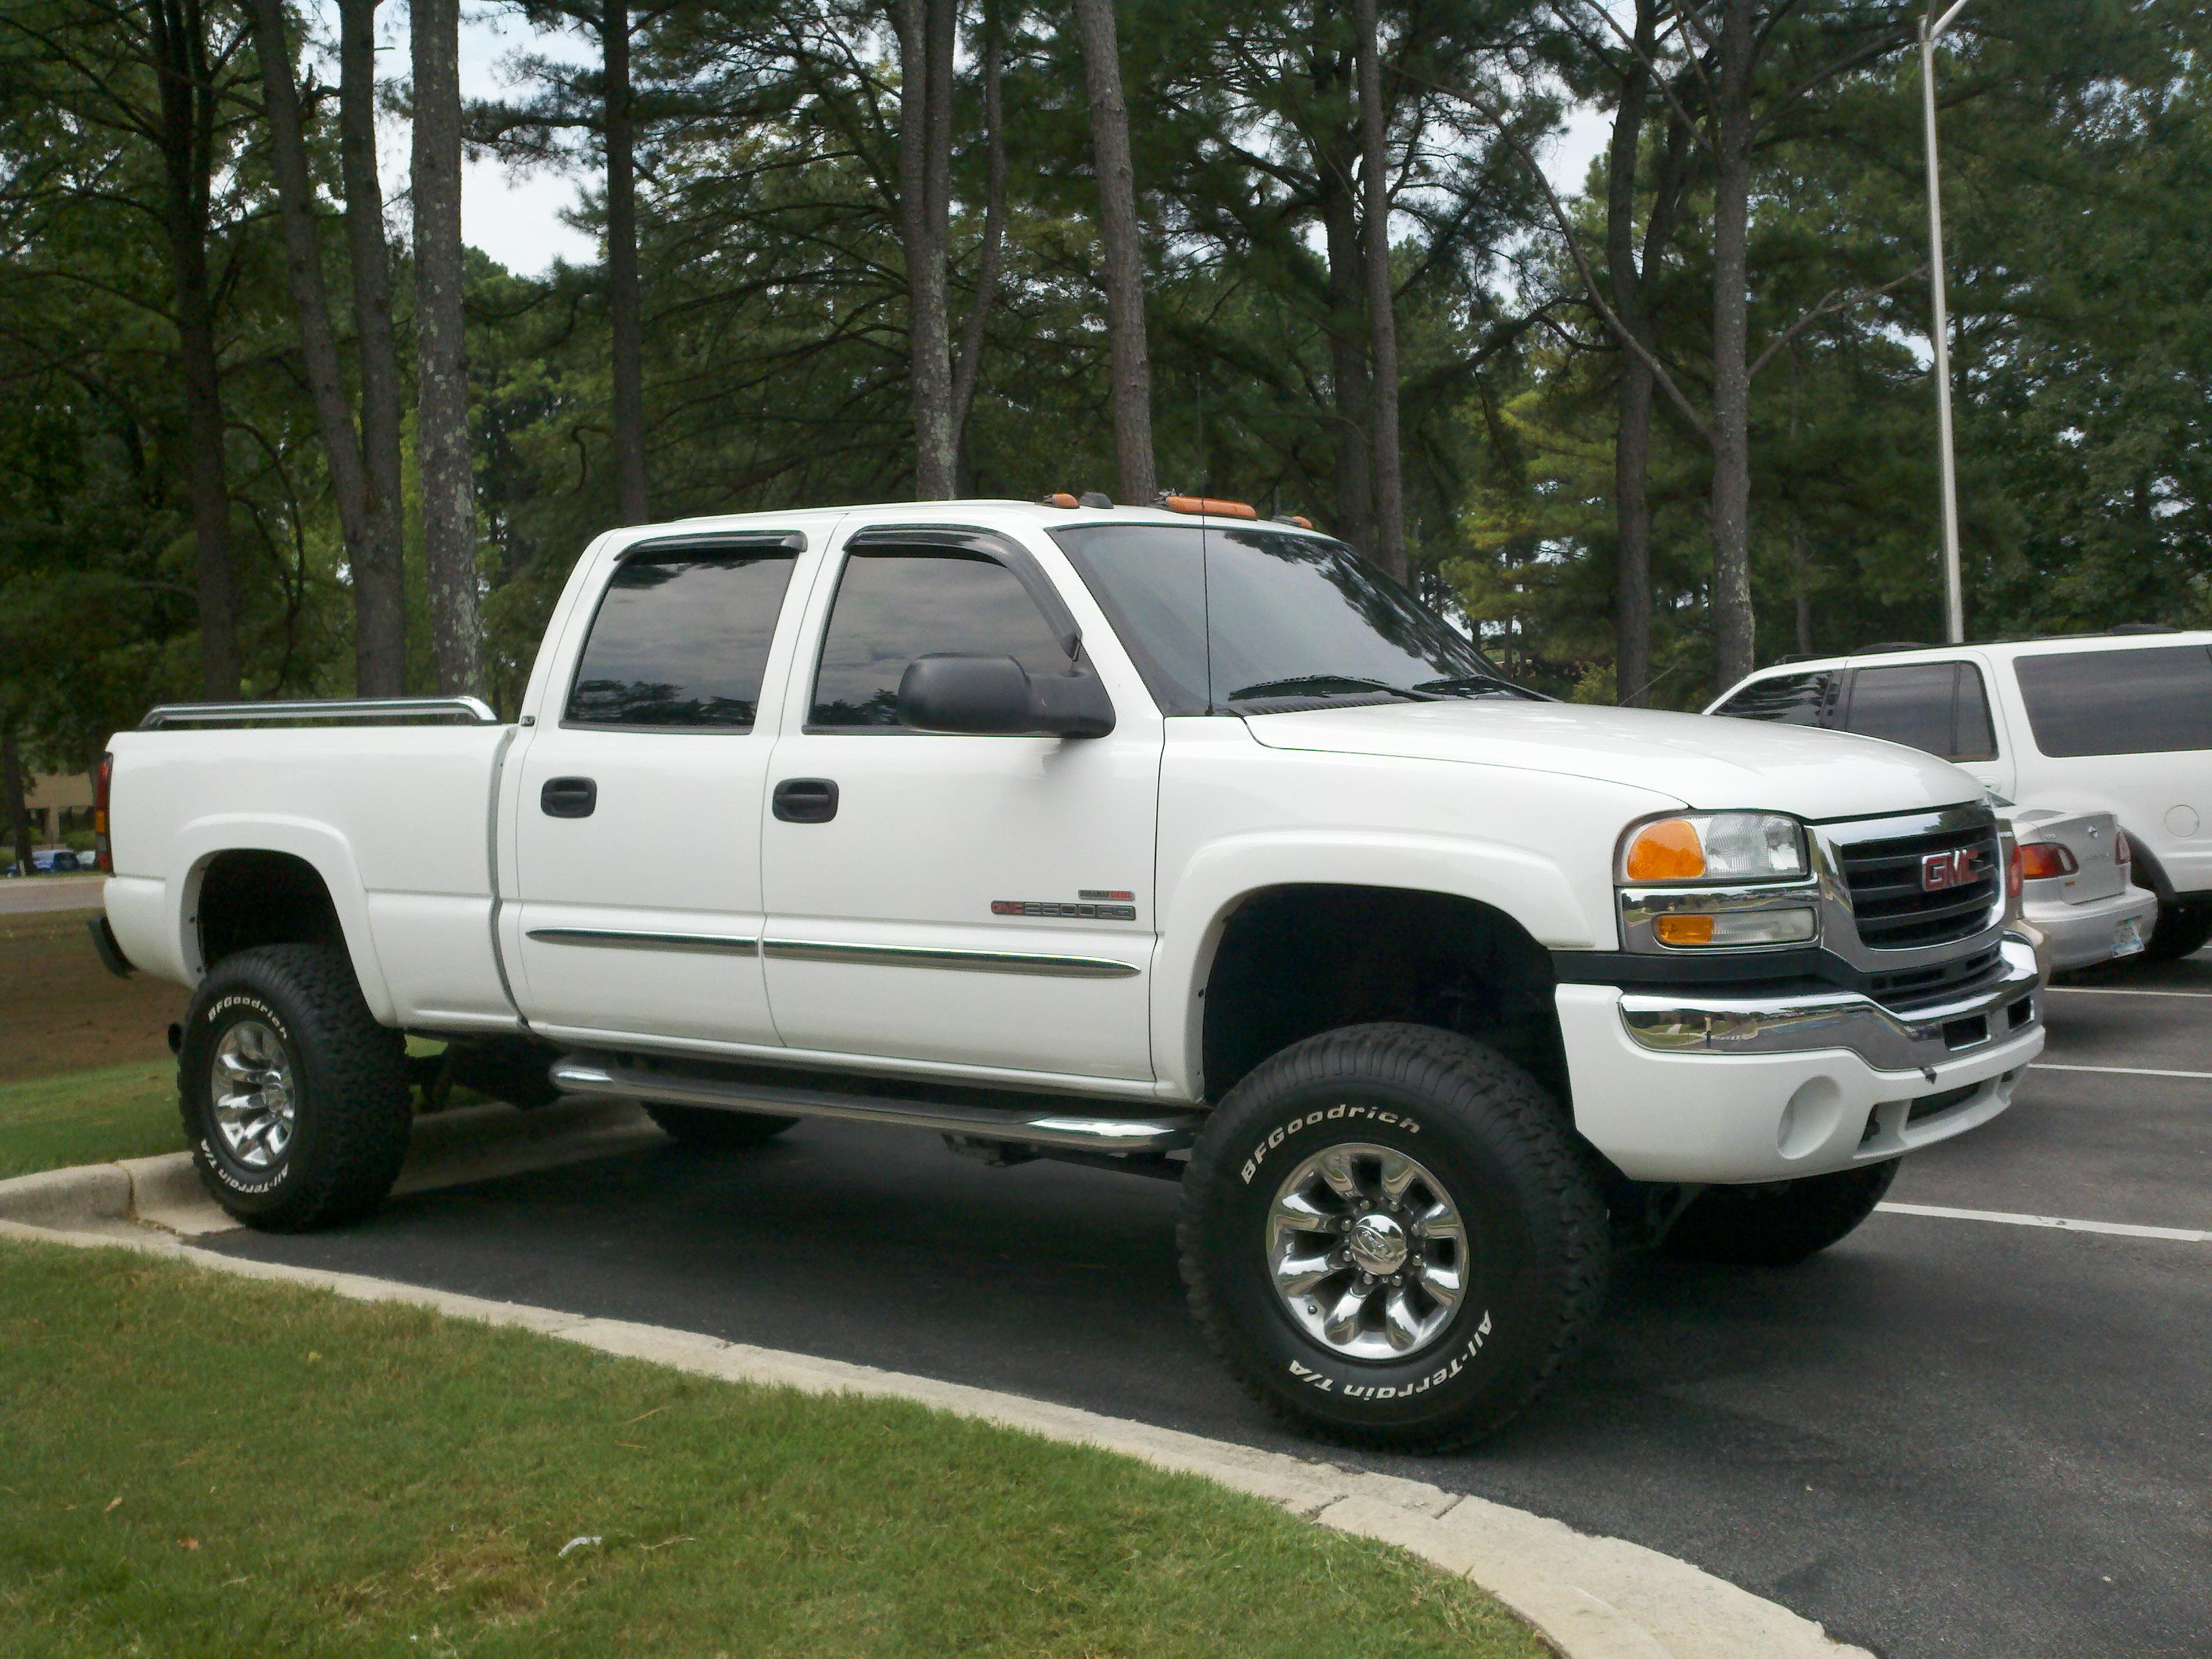 harley_hunt 2004 GMC 2500 HD Extended Cab Specs, Photos